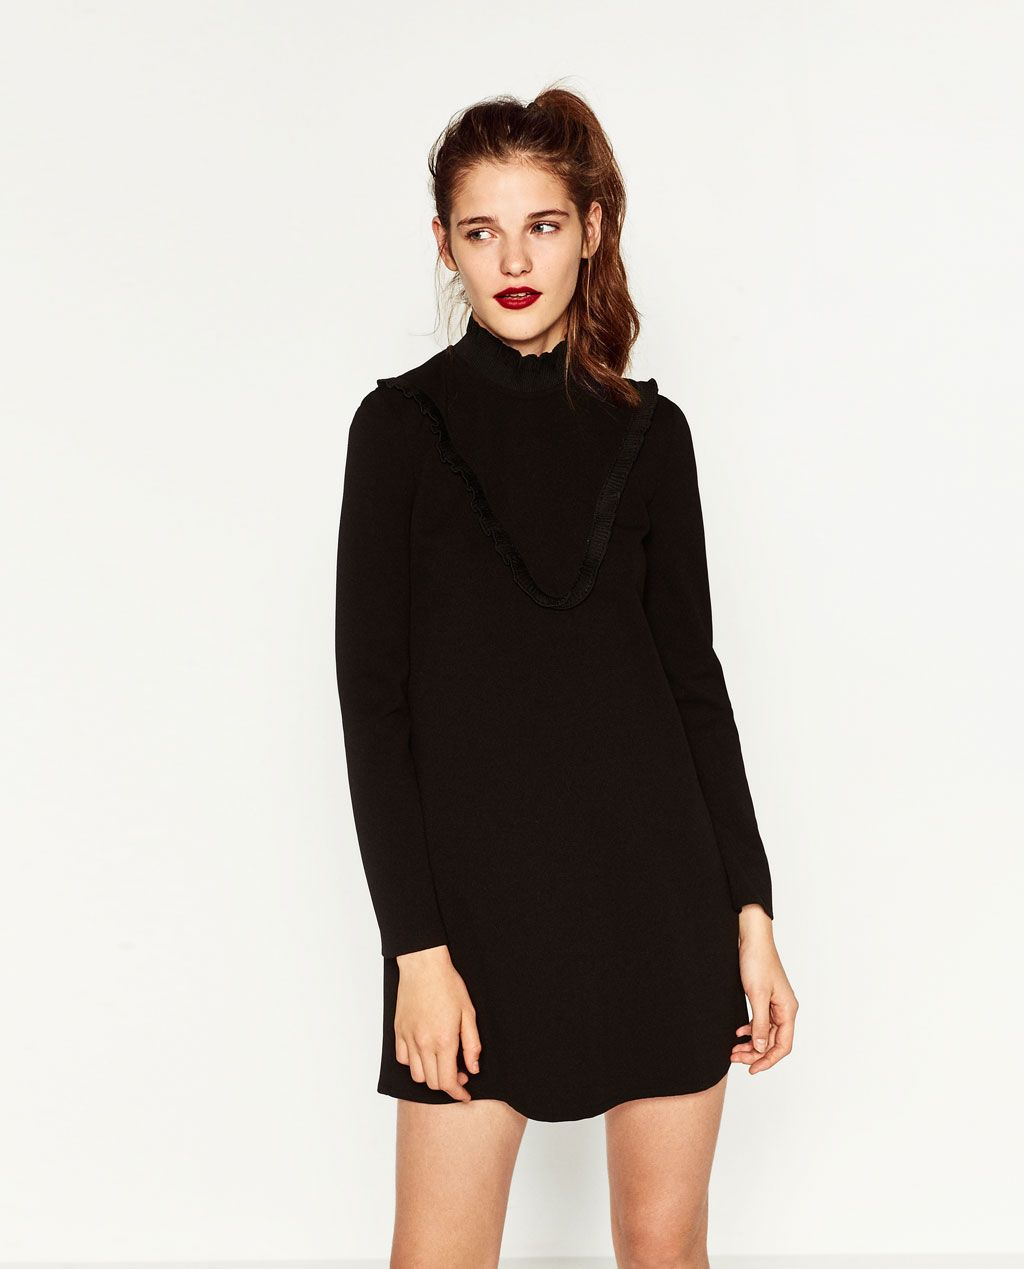 ddb02af6 Image 2 of DRESS WITH CHEST FRILL from Zara | Style | Zara black ...